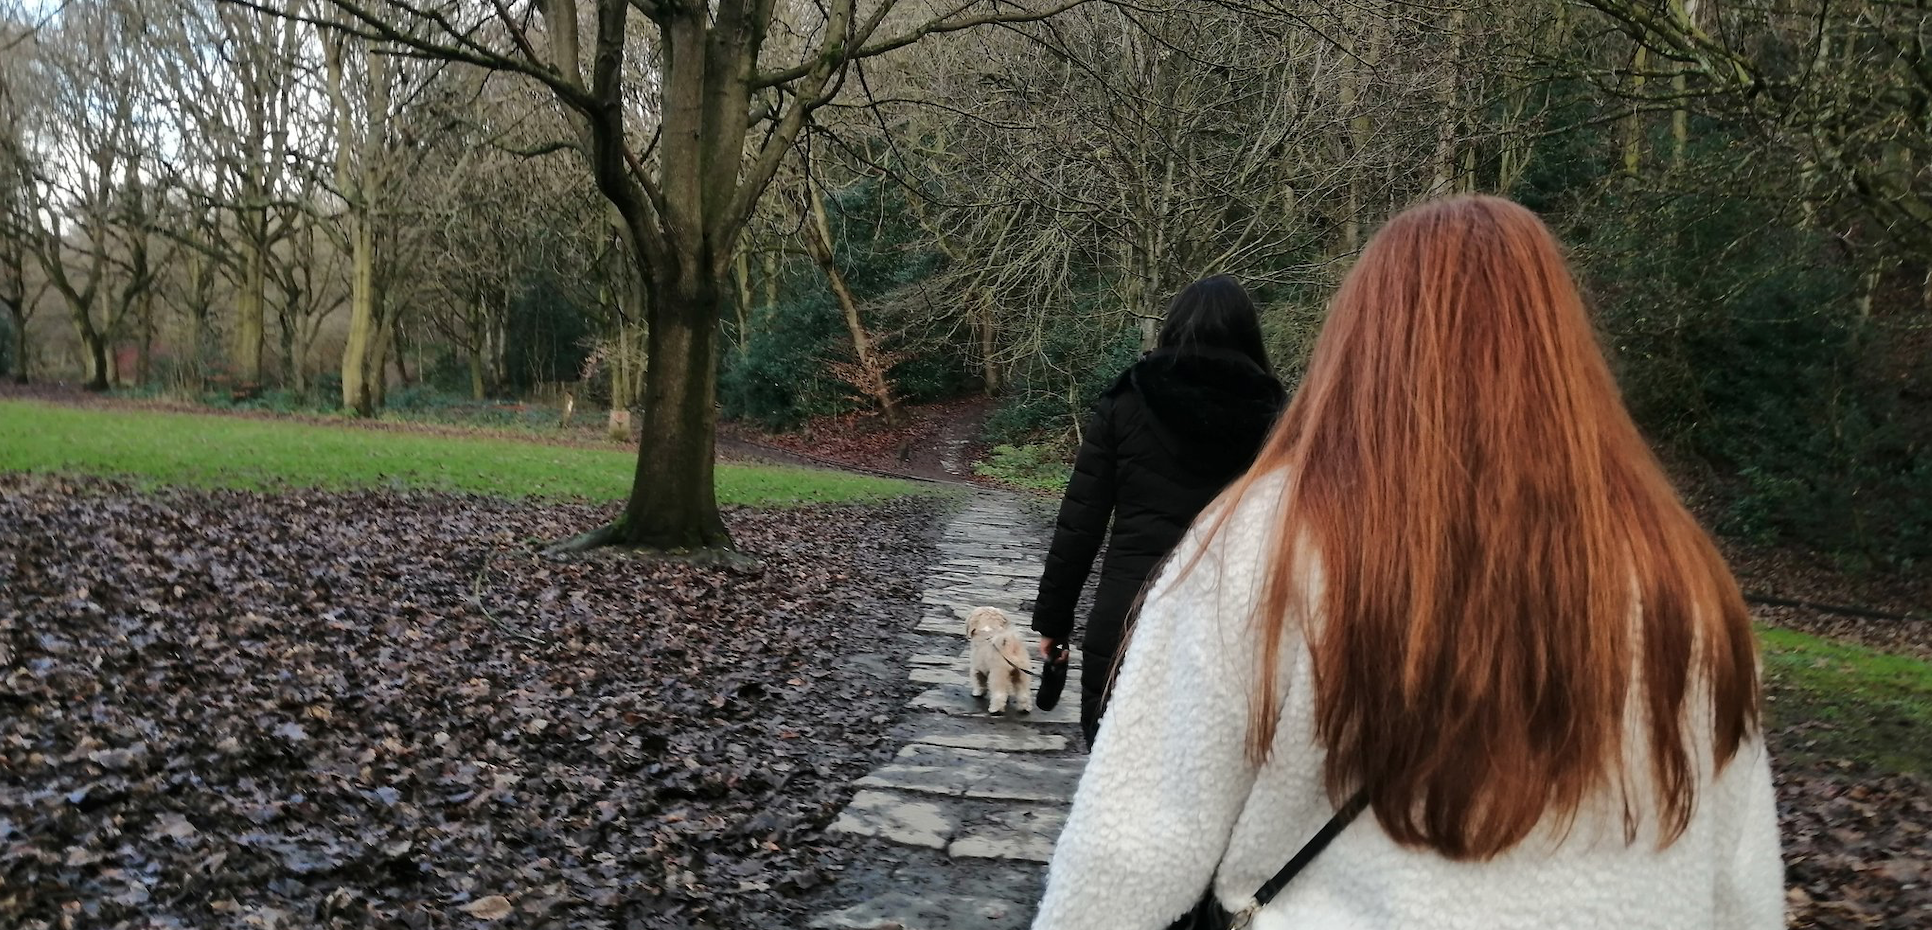 Showing the back of two ladies walking on a path through a park. The lady in front is walking a small dog.